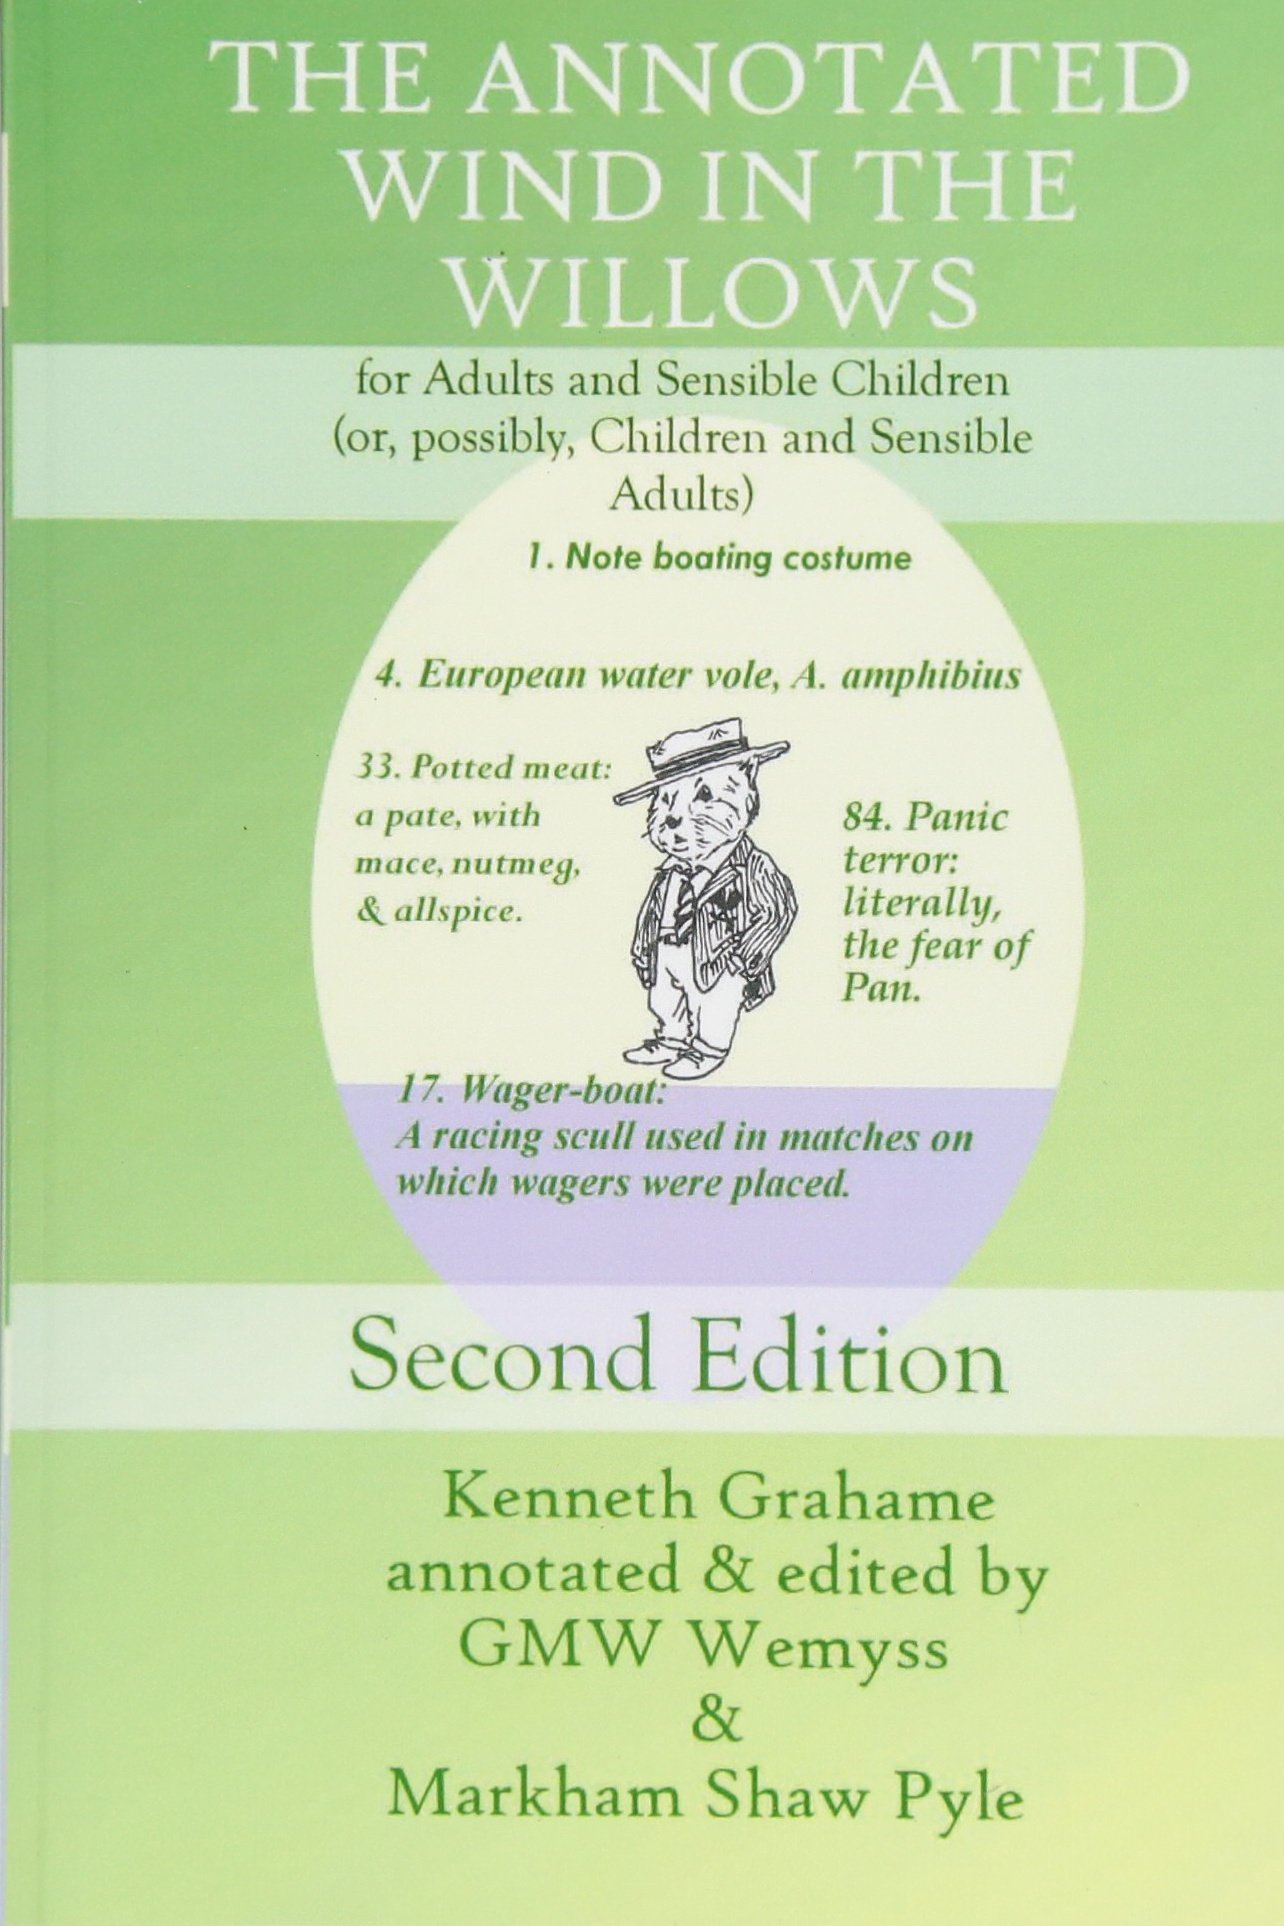 The Annotated Wind in the Willows: for Adults and Sensible Children (or, possibly, Children and Sensible Adults) pdf